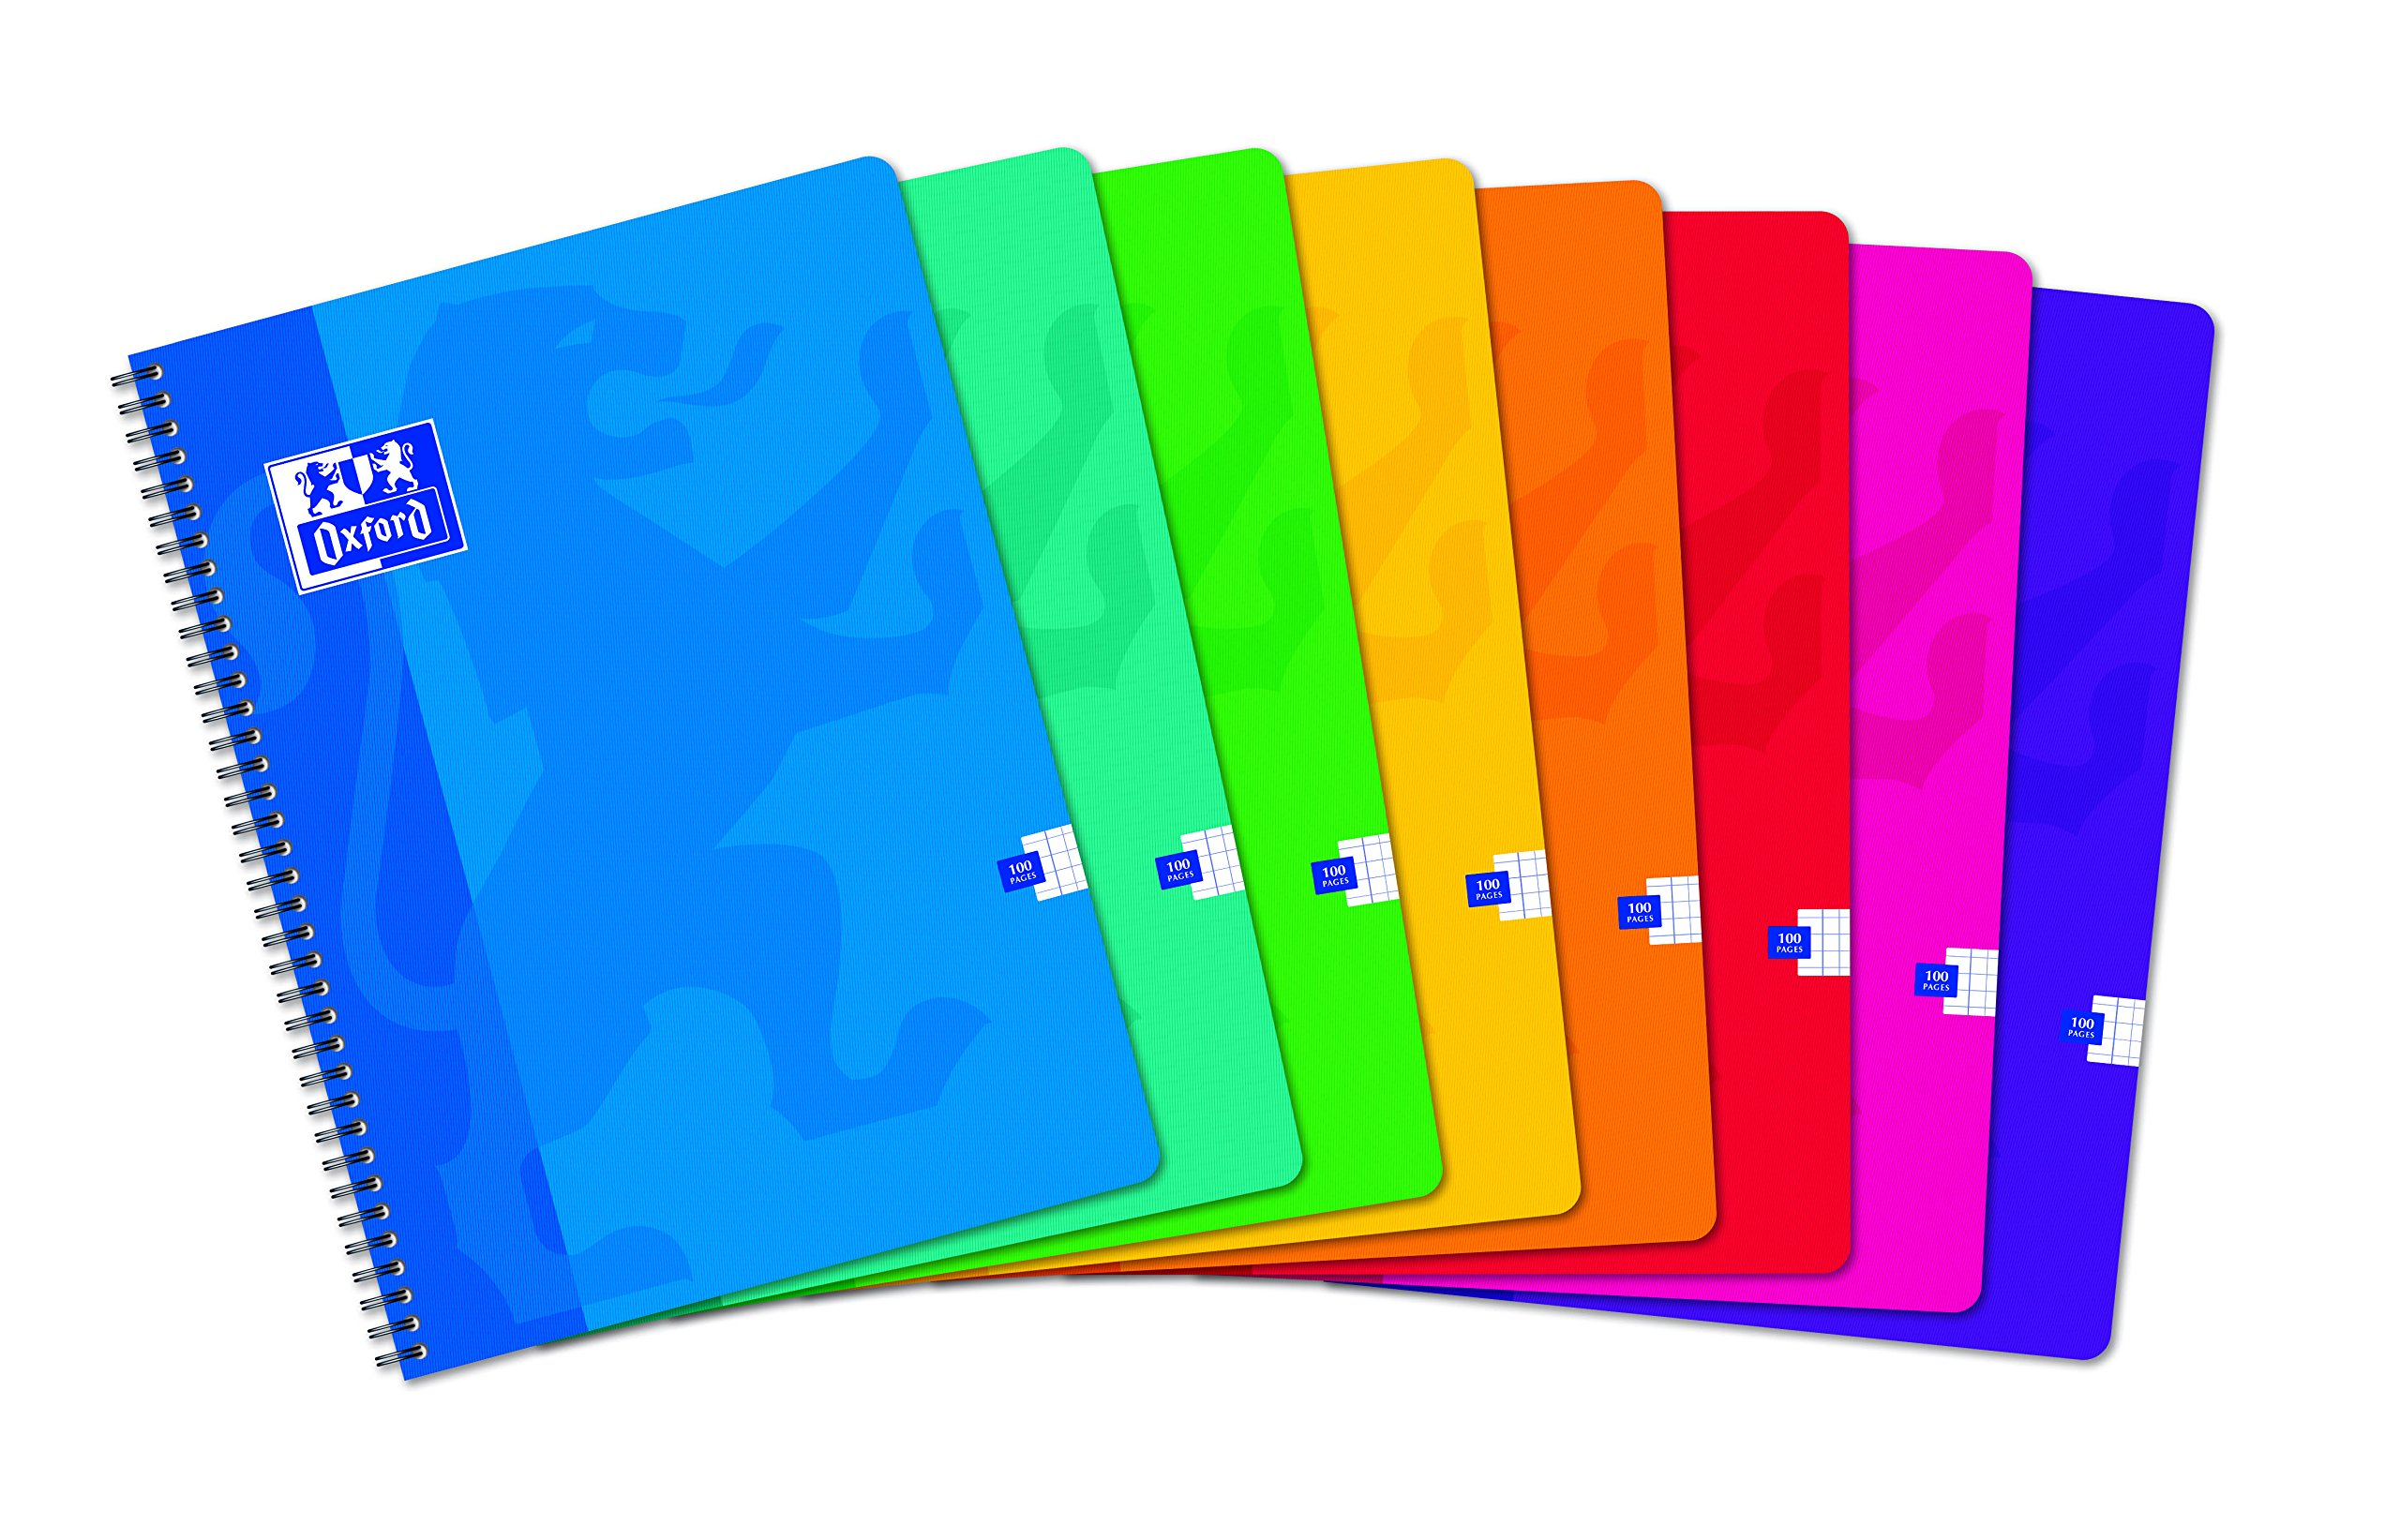 Oxford School Pack of 10 Spiral-bound notebook with small 5 x 5 Squares 24 x 32 cm - 100 pages-Assorted Colours